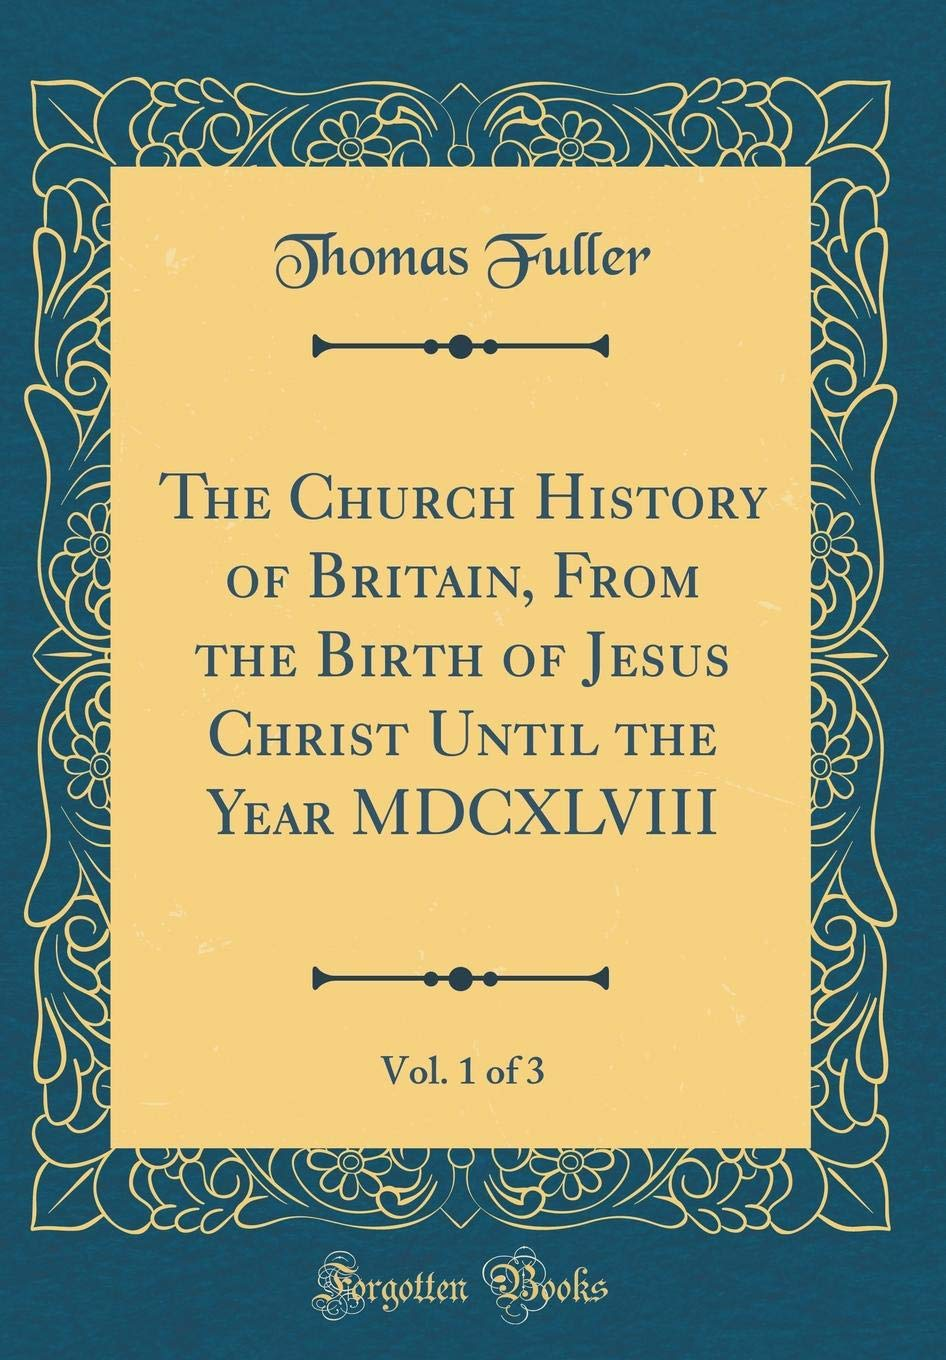 The Church History of Britain, From the Birth of Jesus Christ Until the Year MDCXLVIII, Vol. 1 of 3 (Classic Reprint) pdf